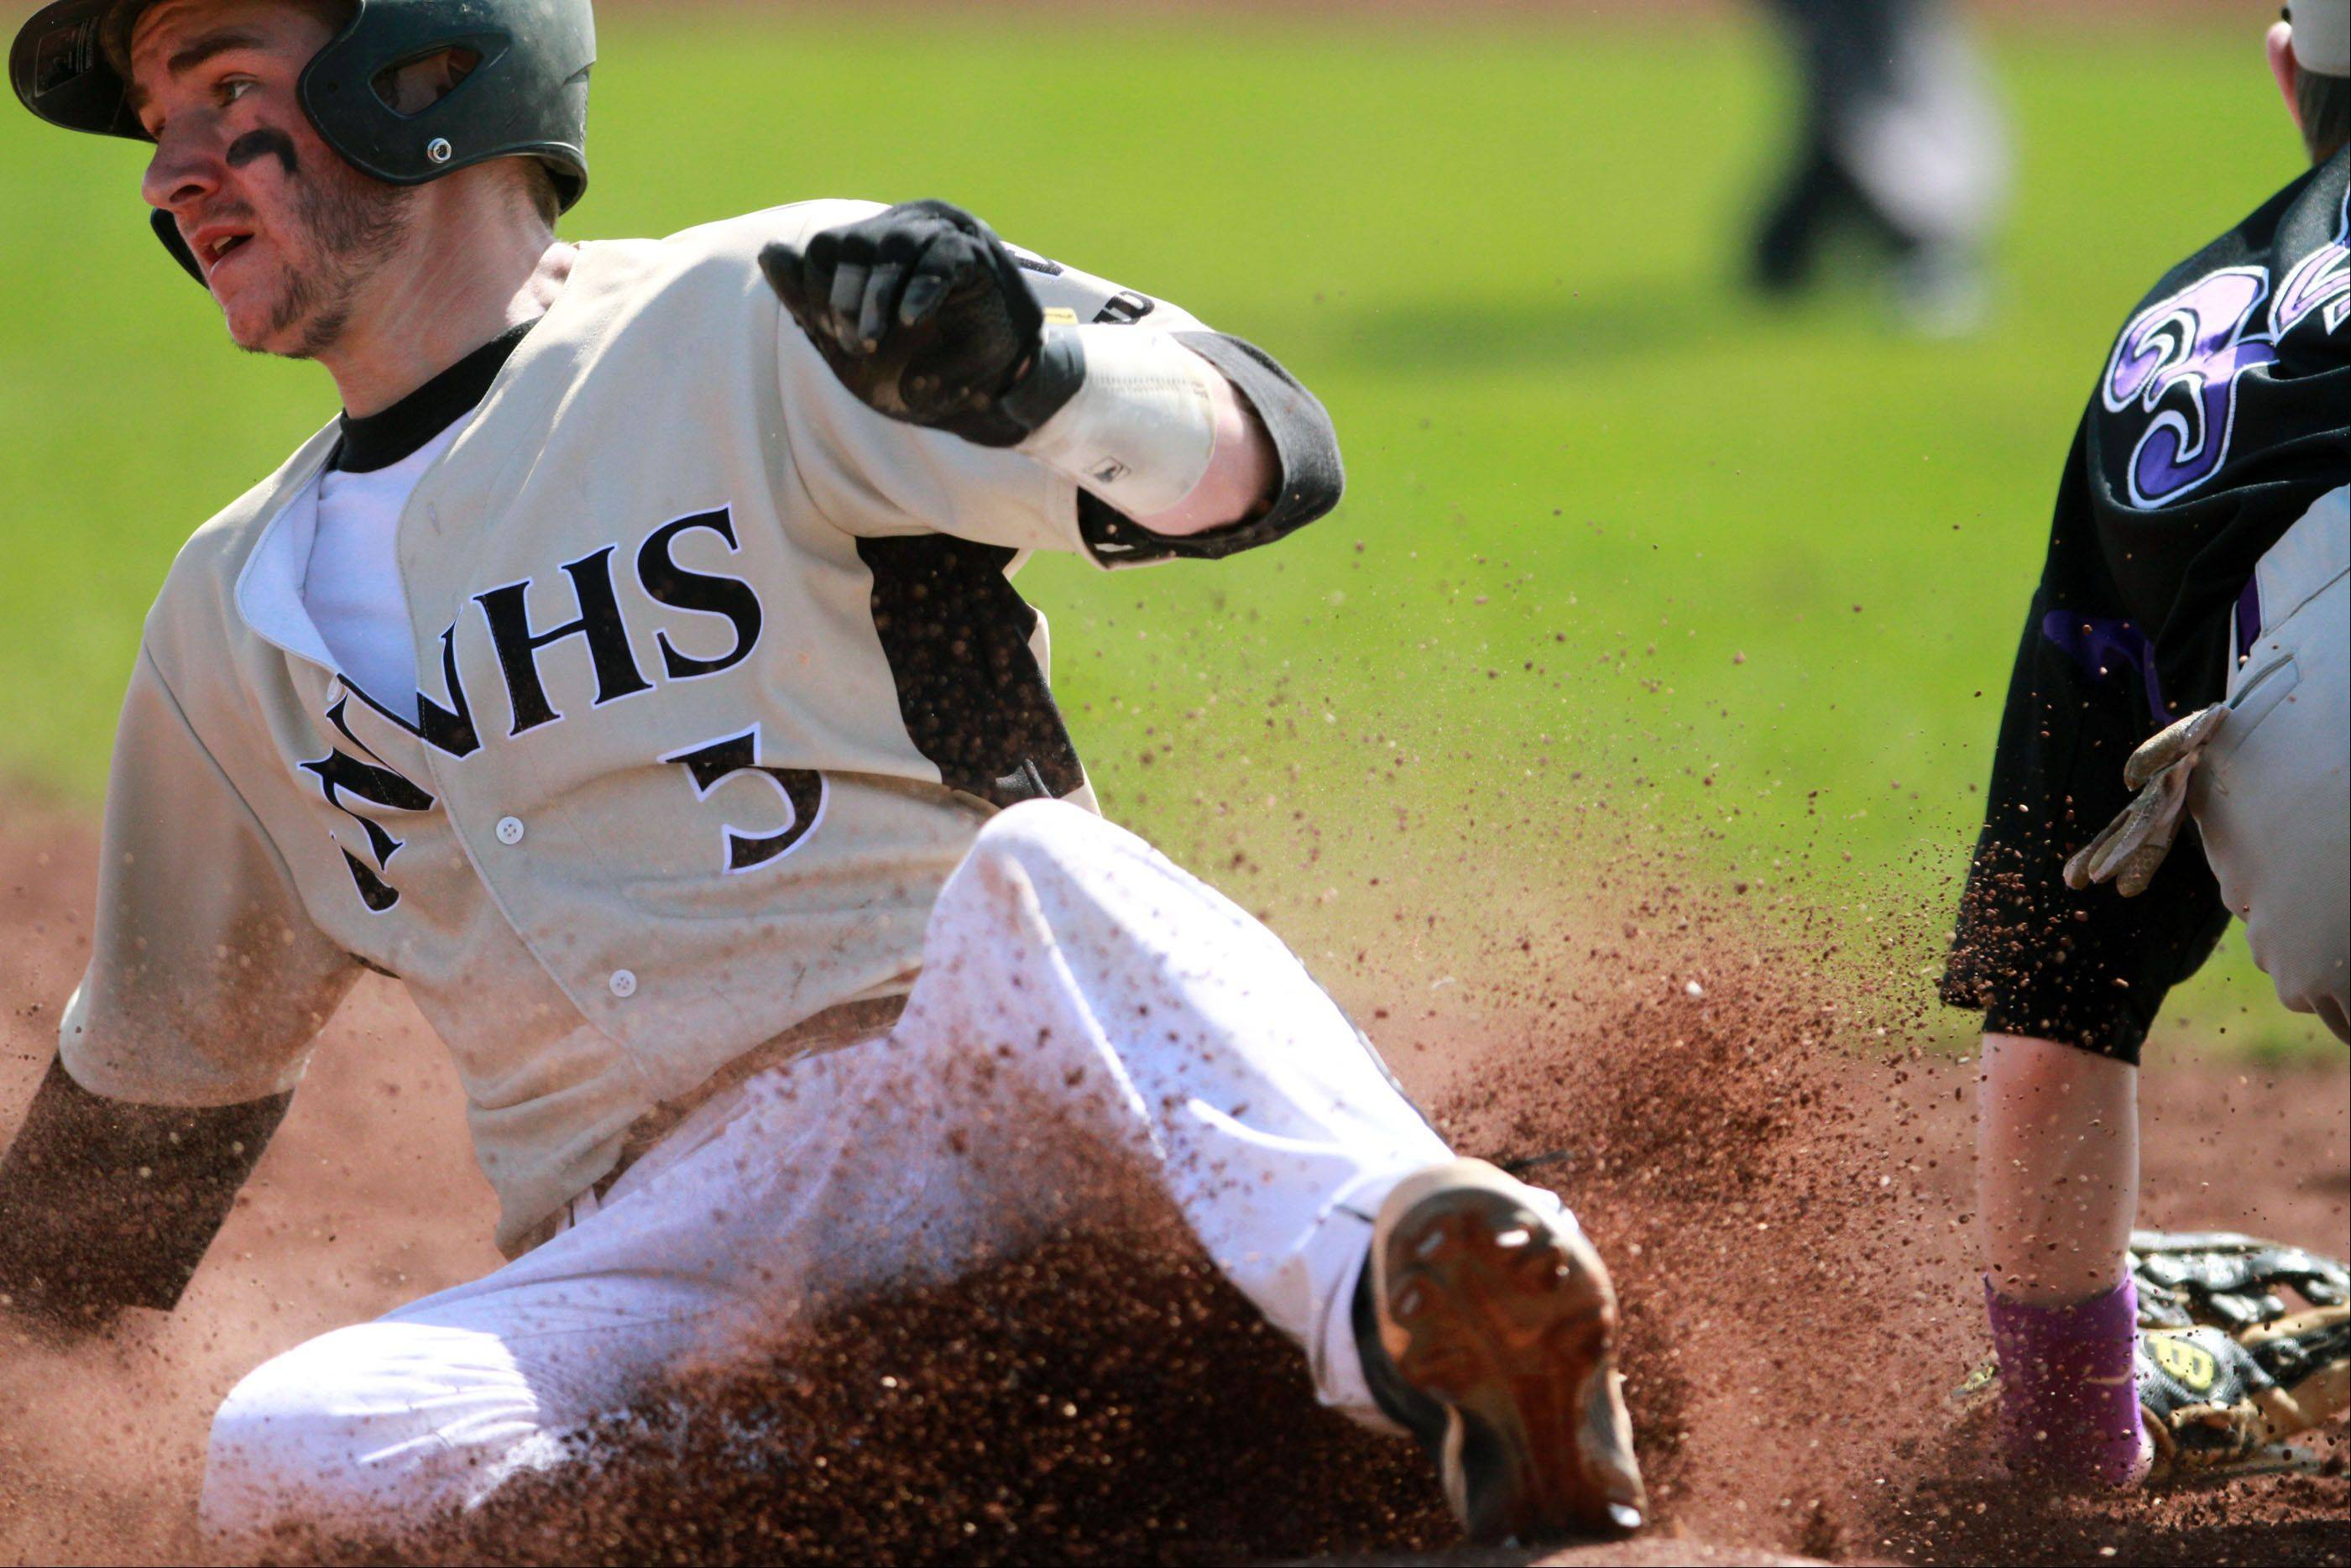 Grayslake North shortstop Carl Russell is safe at third base as Hampshire third baseman RJ Consigny waits for the throw at Grayslake North on Saturday. Russell ended up scoring on a hit.